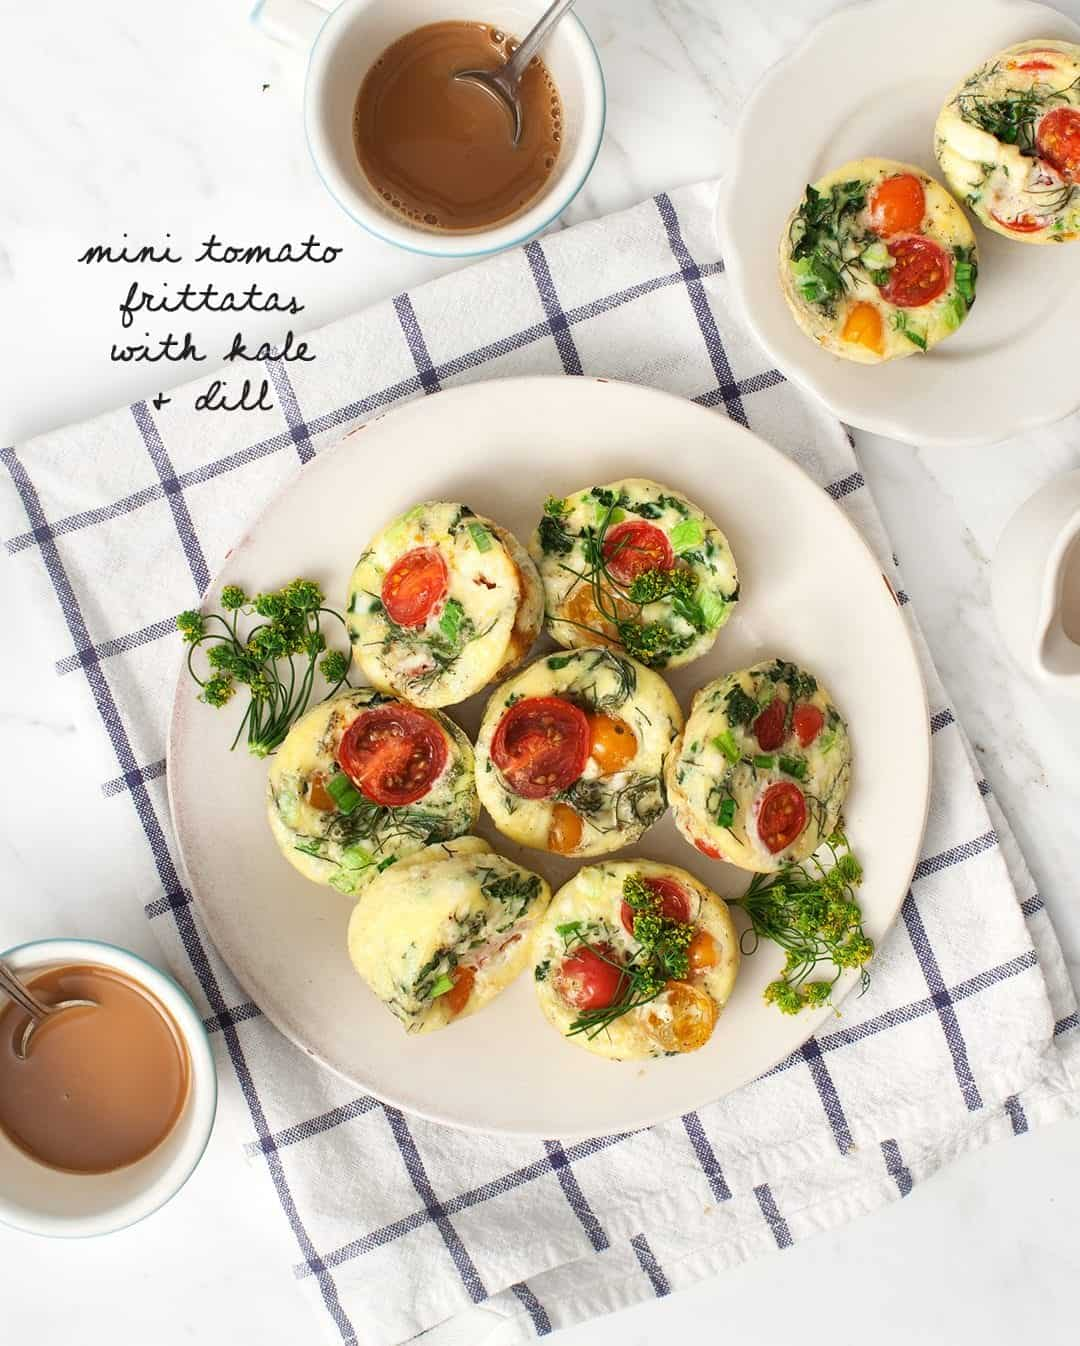 Mini Tomato Frittatas with Dill on a plate